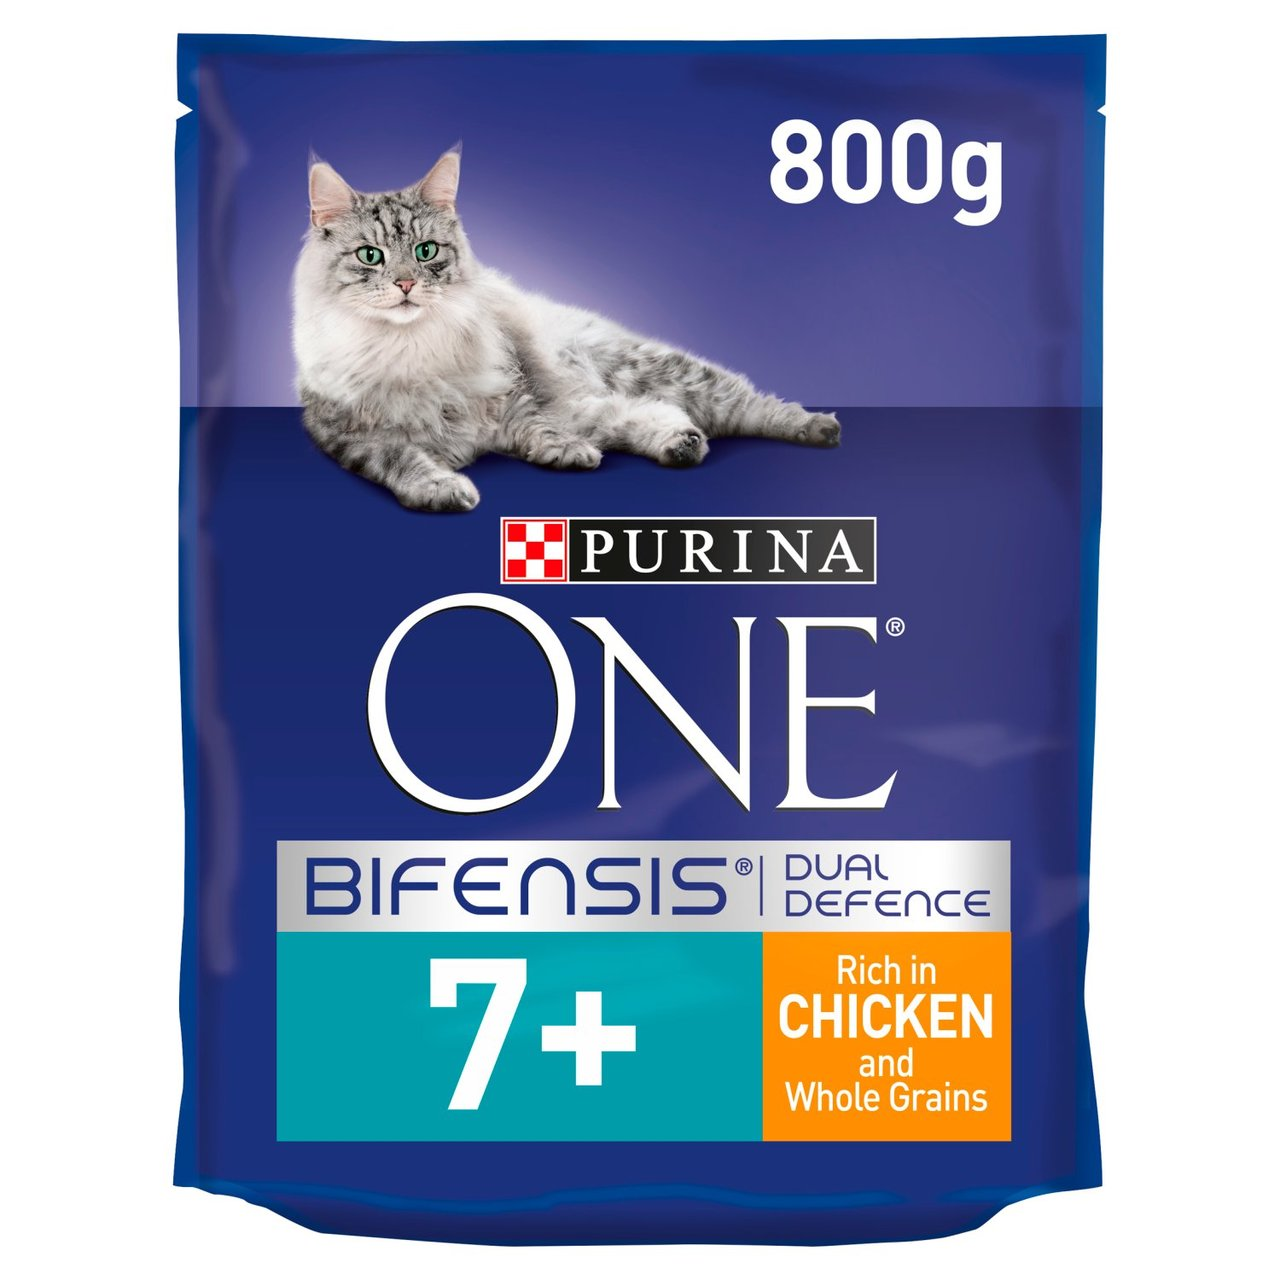 An image of Purina One 7+ Cat Chicken & Wholegrains